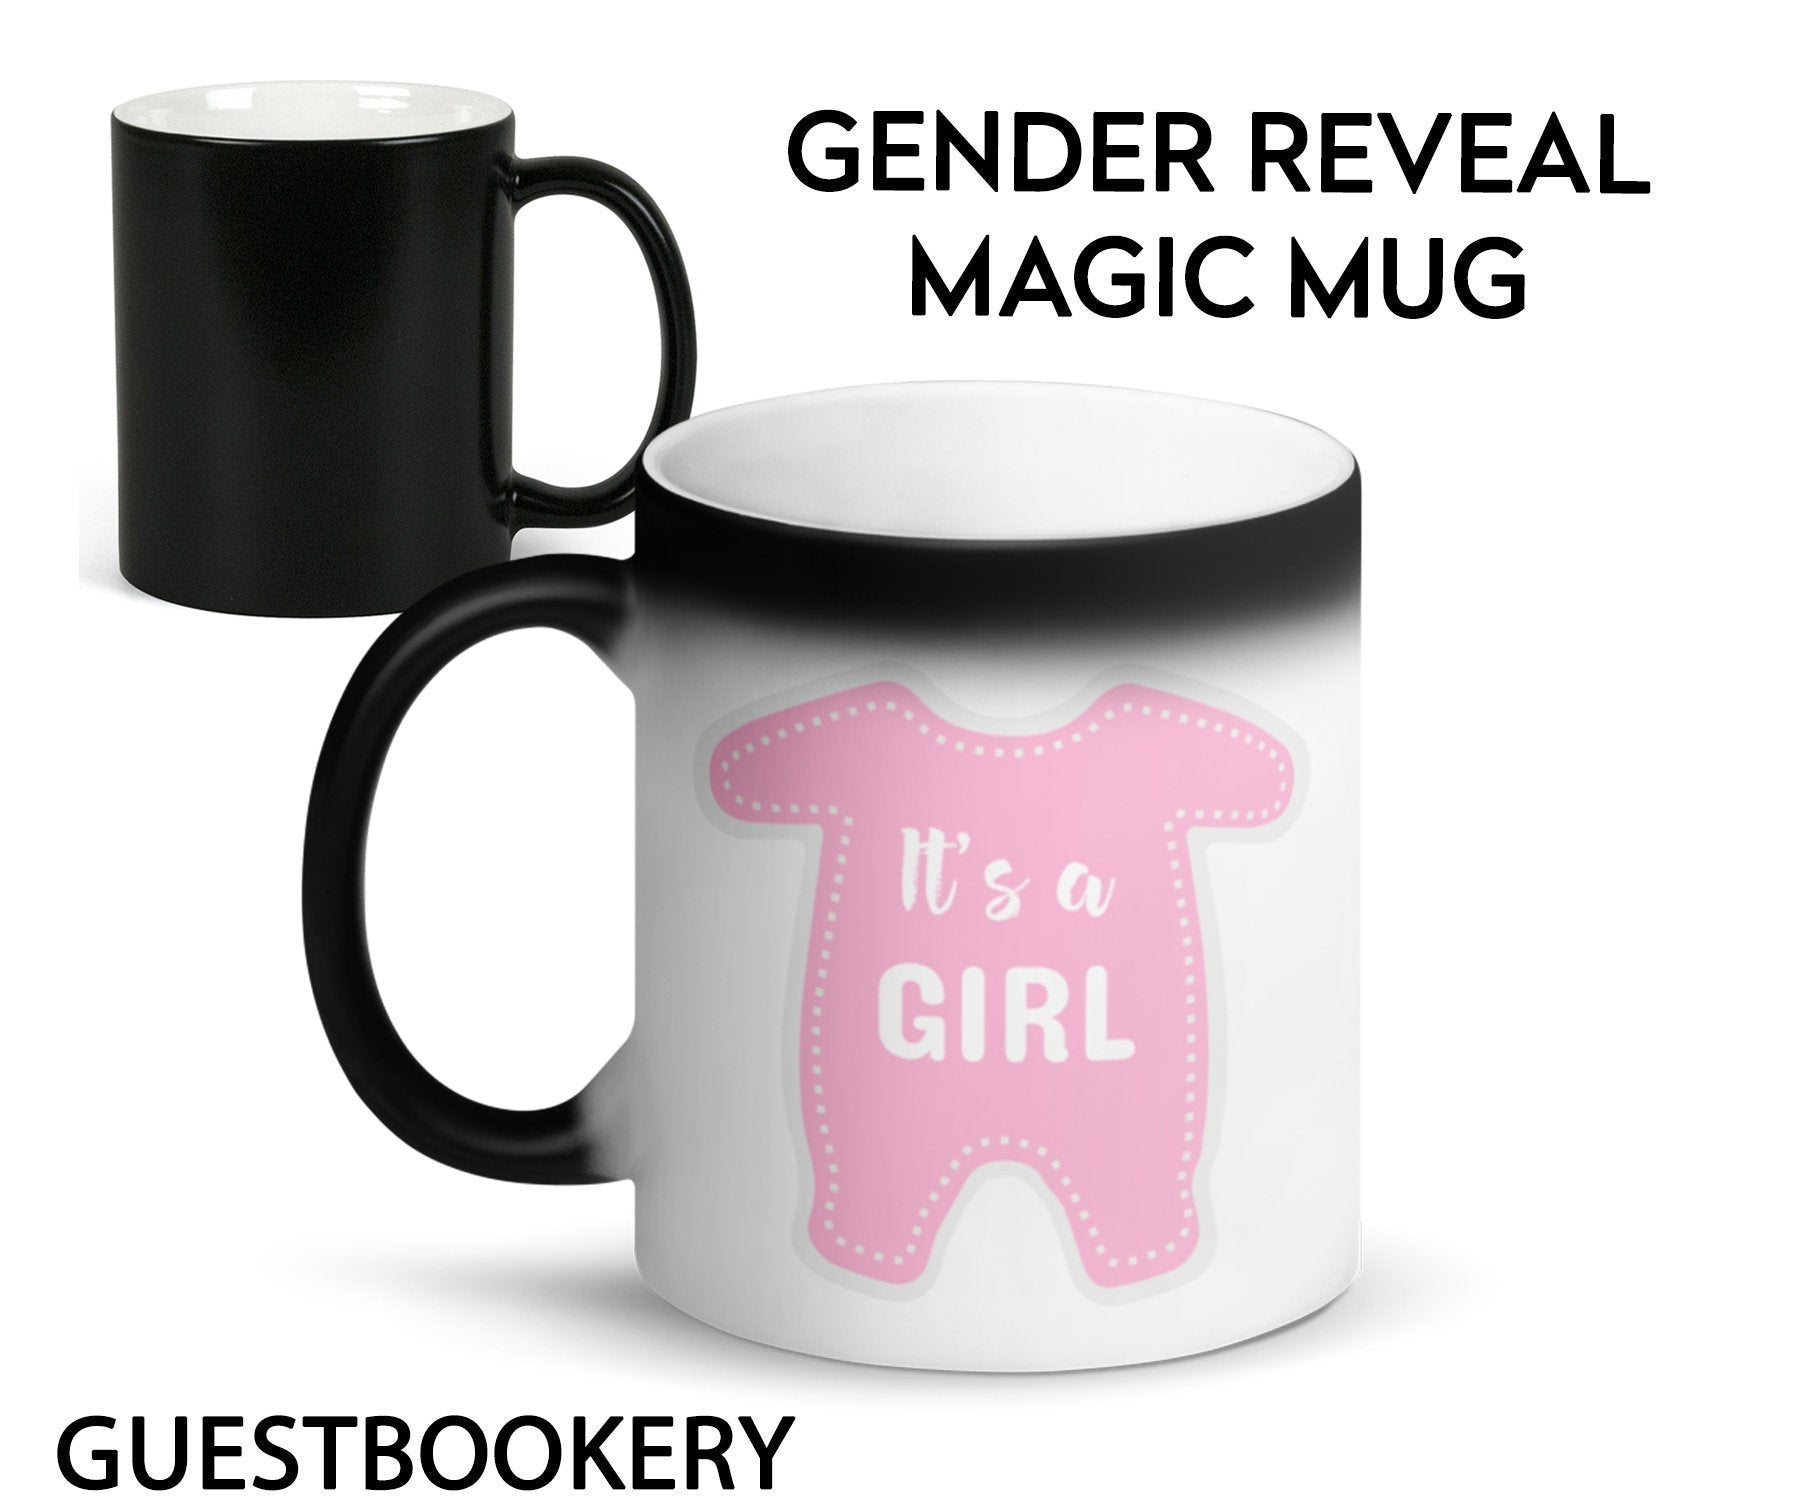 GENDER REVEAL Magic Mug - Girl - Guestbookery